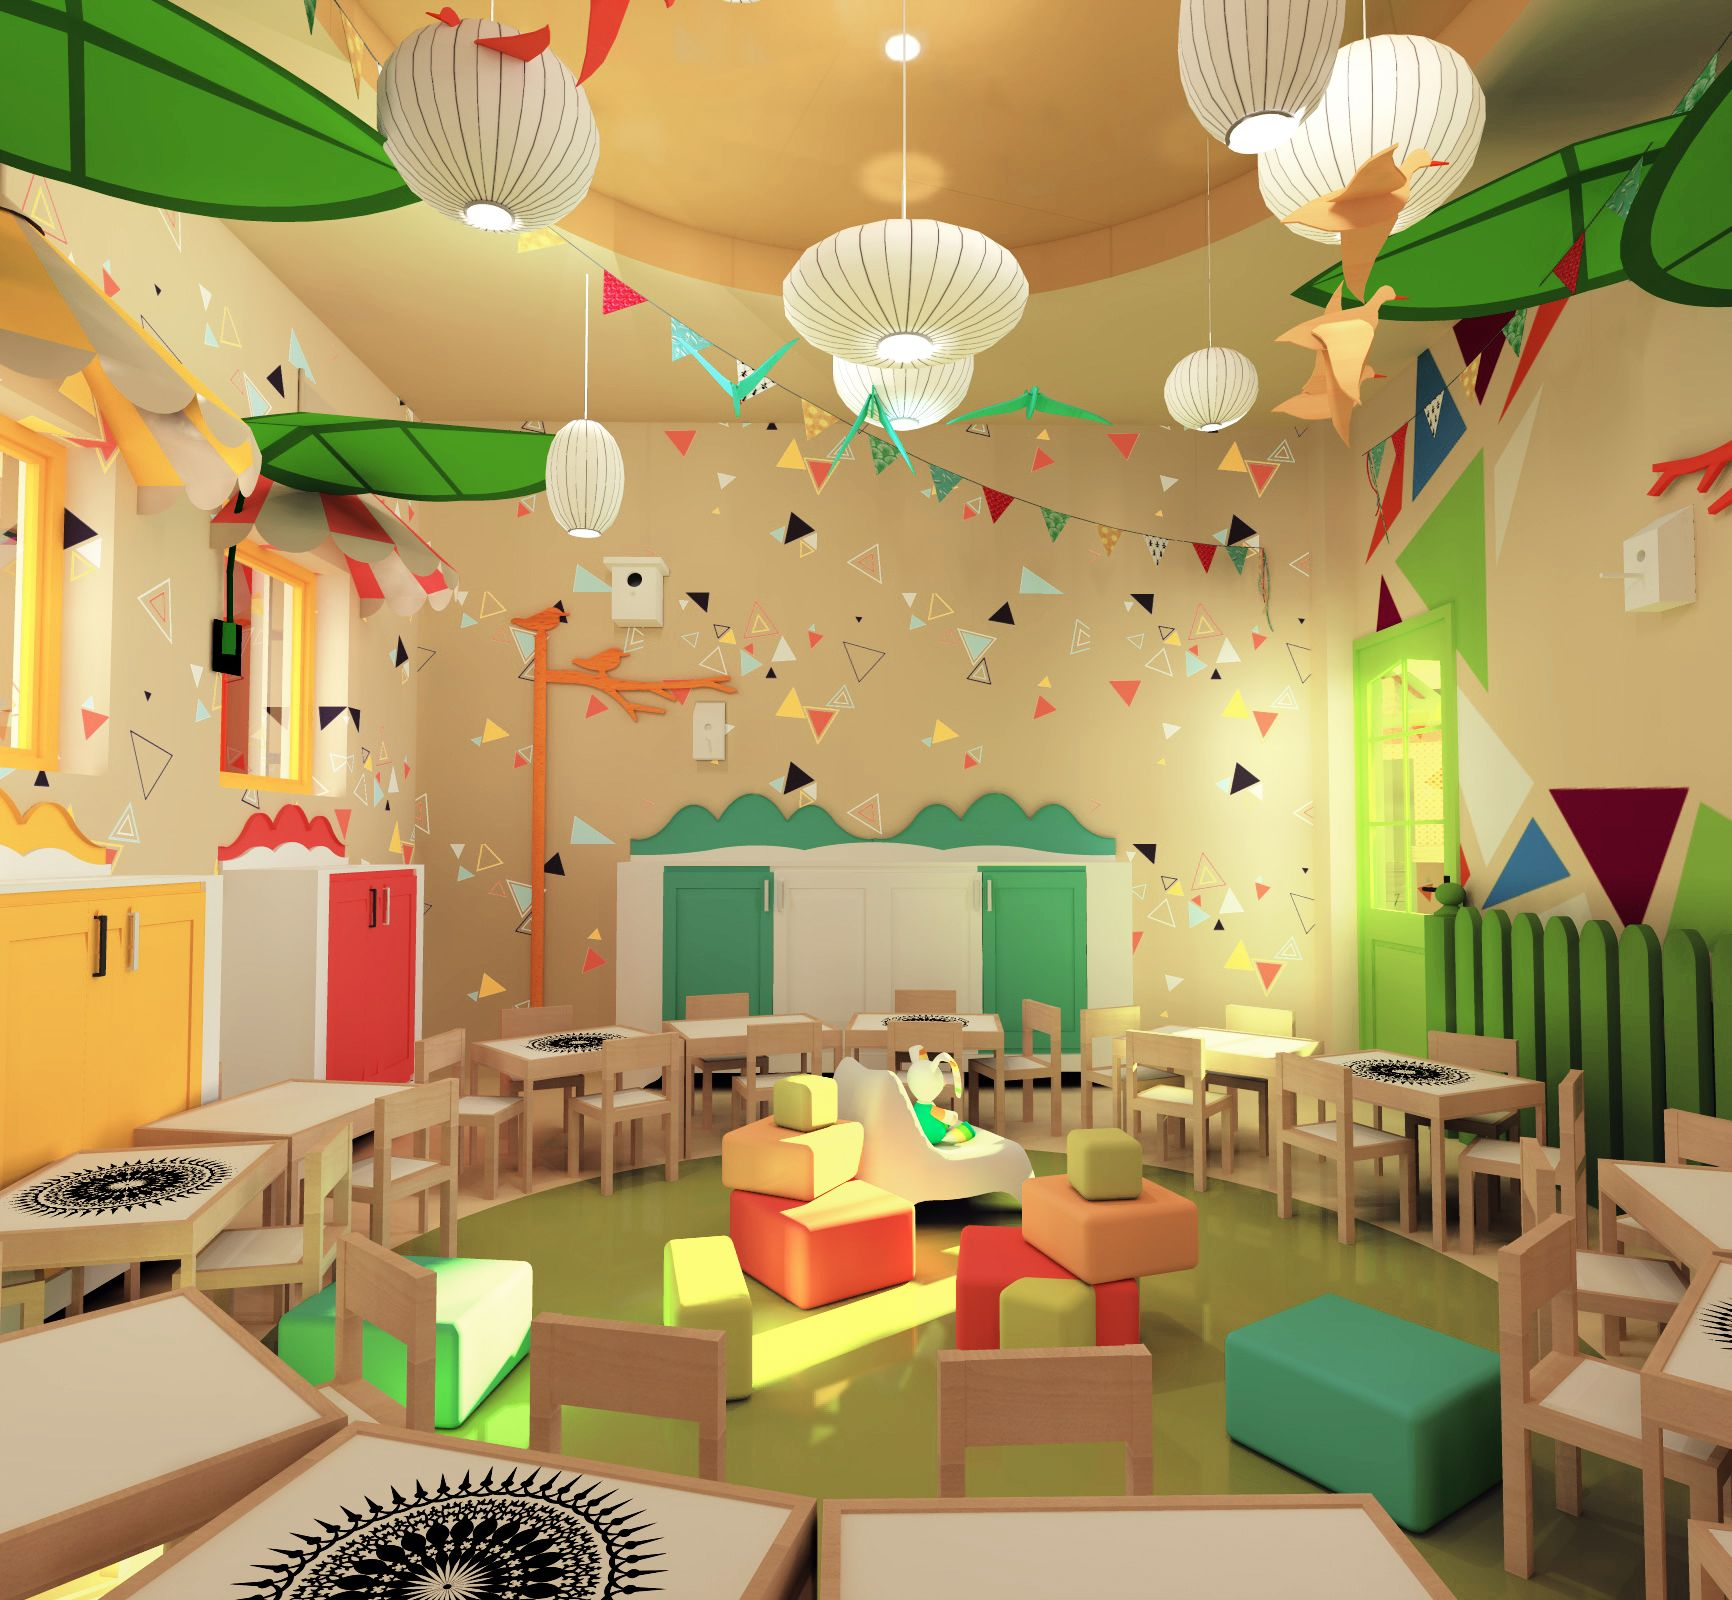 Kindergarten Dining Room Design - Colorful Spaces - Mandala Floor